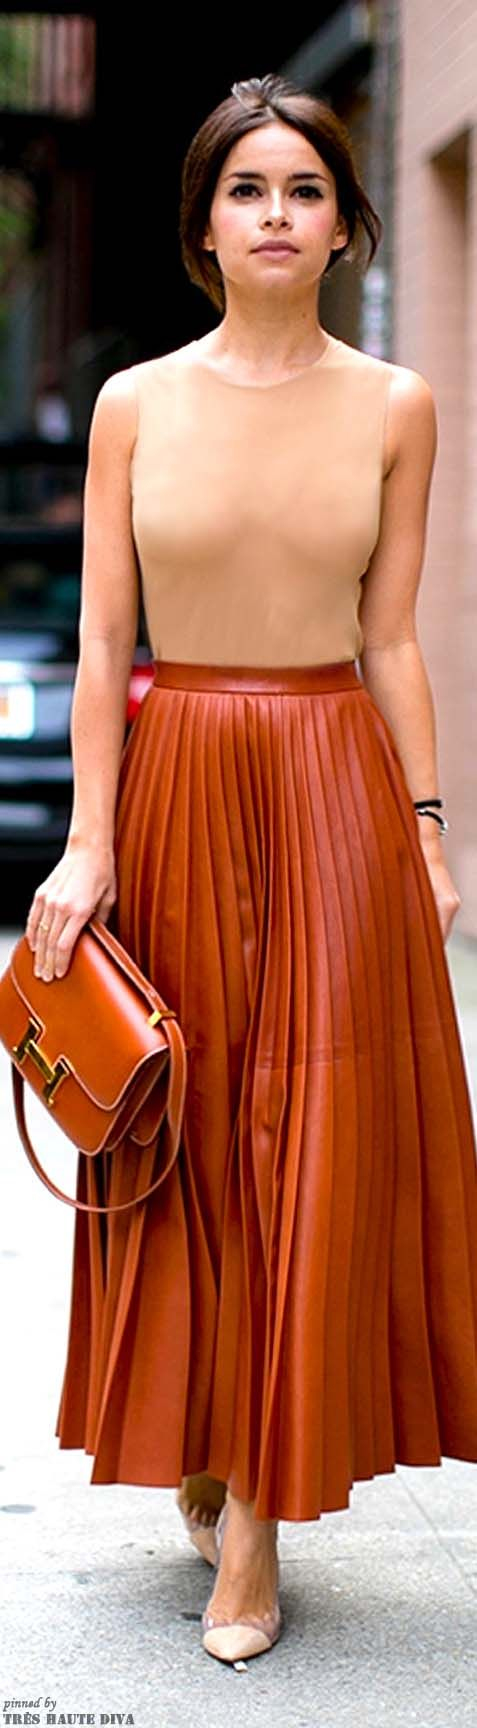 TIG's picks: Great tones of rust, nude and tan. Street style NYFW14. #NYFW14 #streetstyle #colour